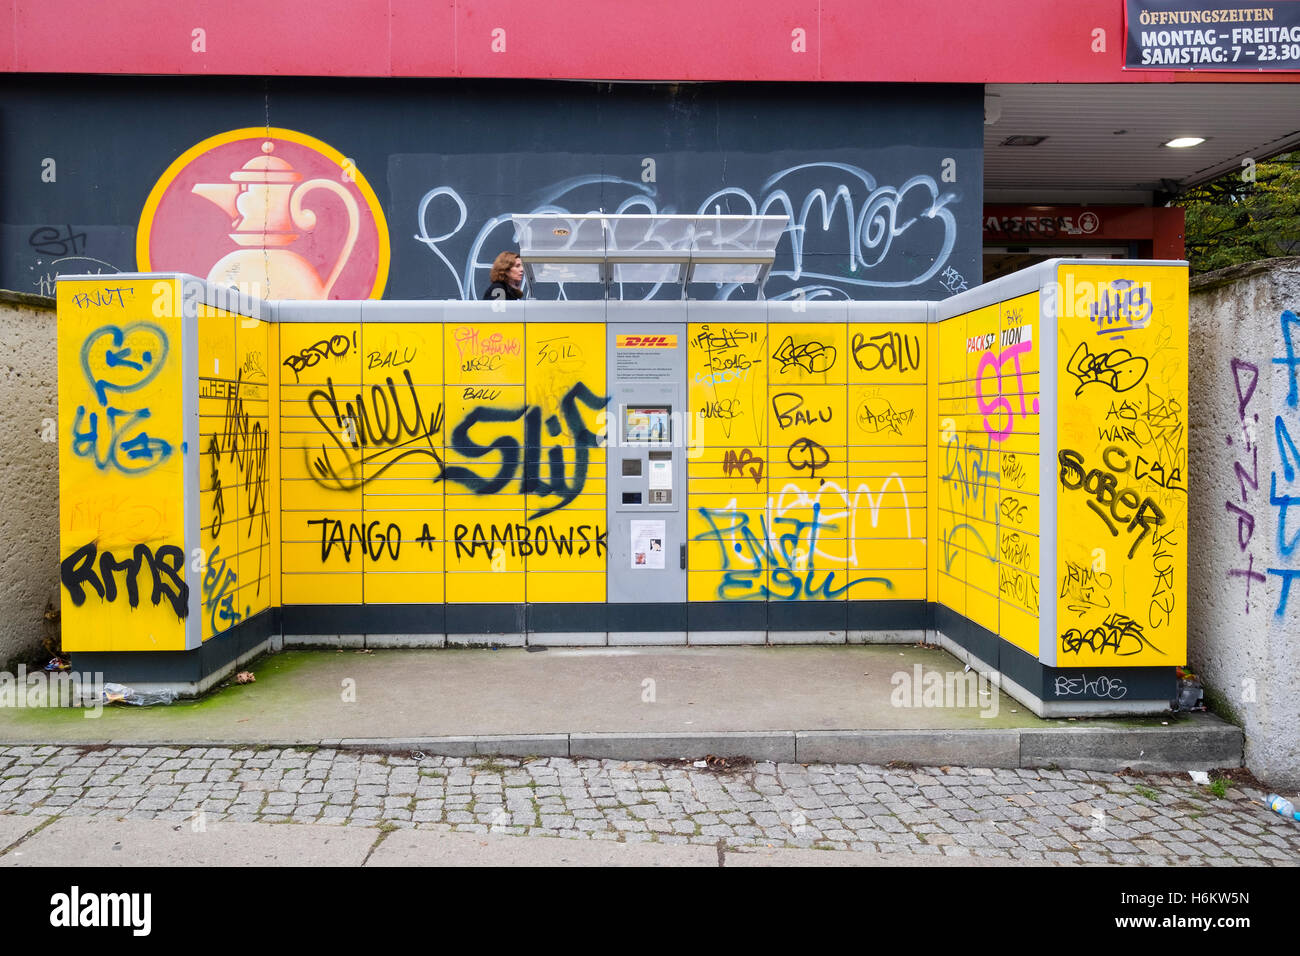 dhl self service parcel drop off lockers covered in graffiti in stock photo 124597361 alamy. Black Bedroom Furniture Sets. Home Design Ideas